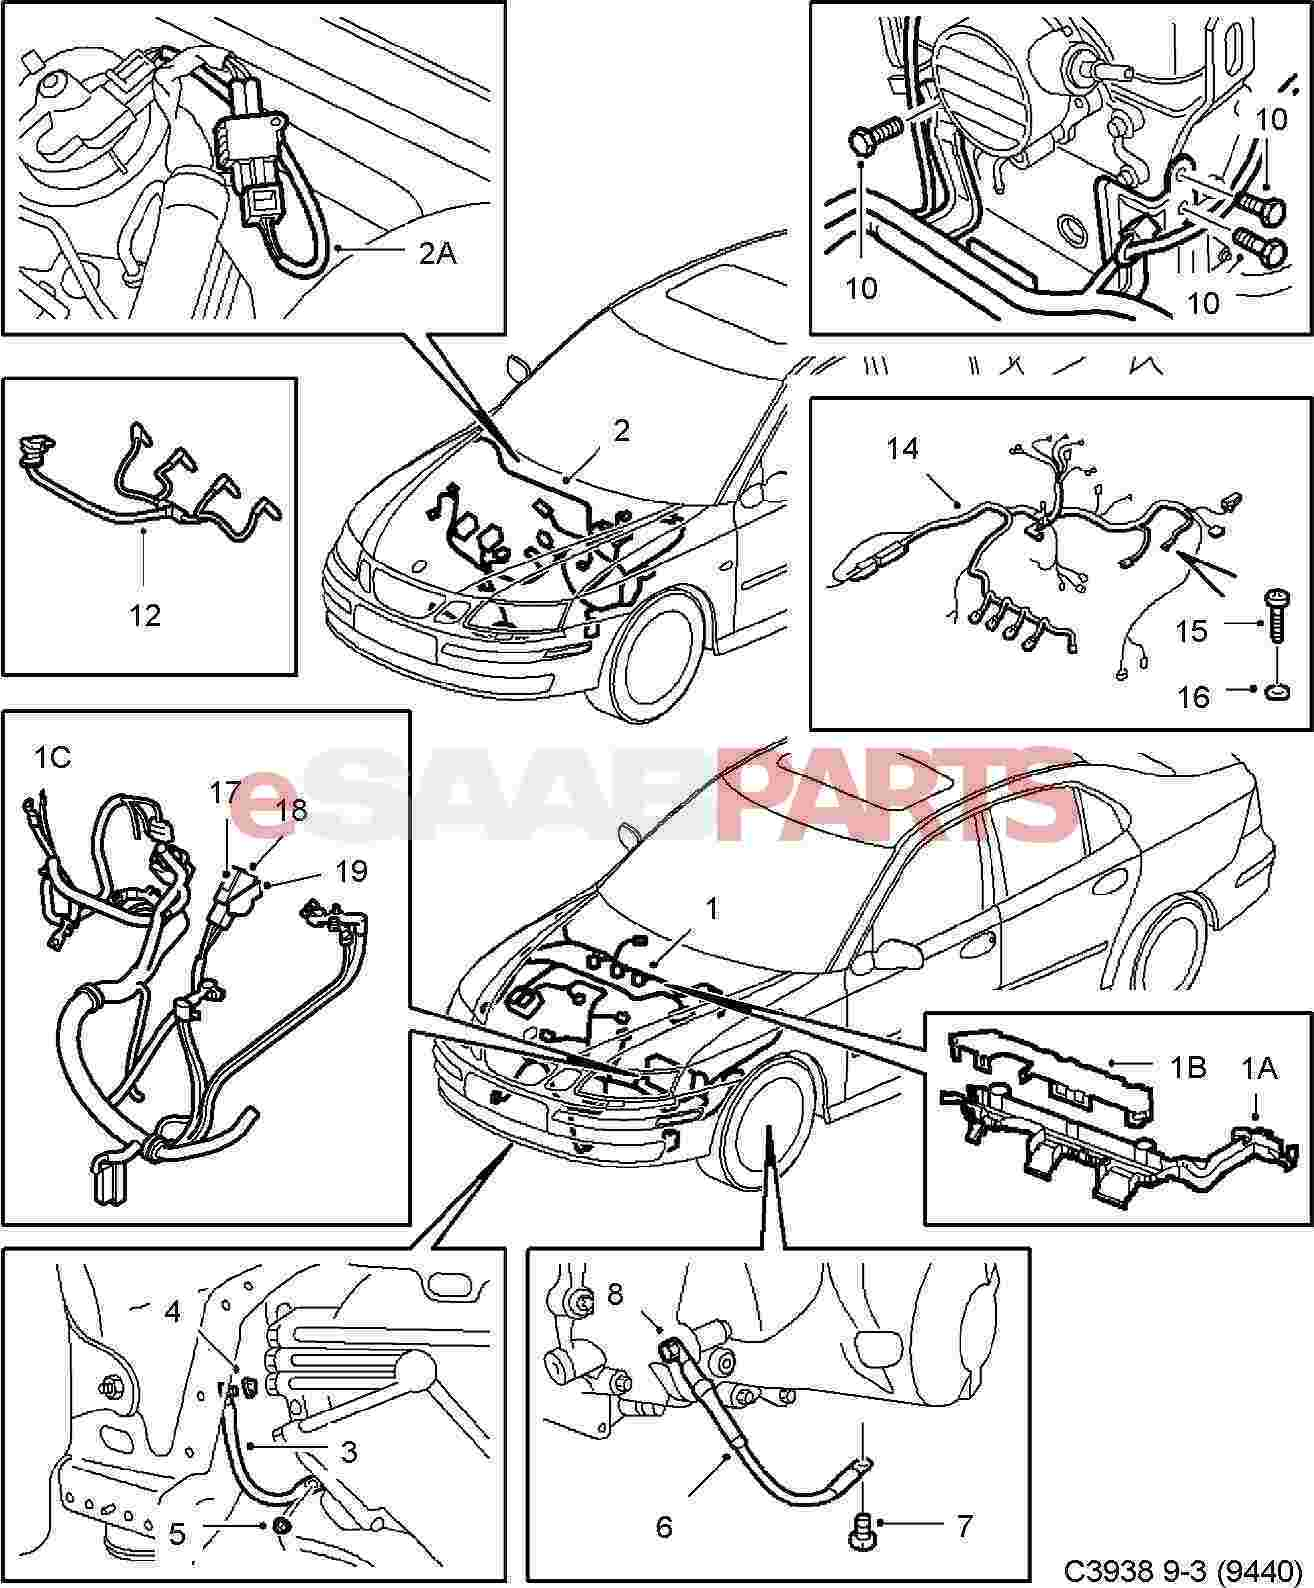 2005 saab 9 3 radio wiring diagram kenwood kdc 155u door speaker database stereo harness schematic 2002